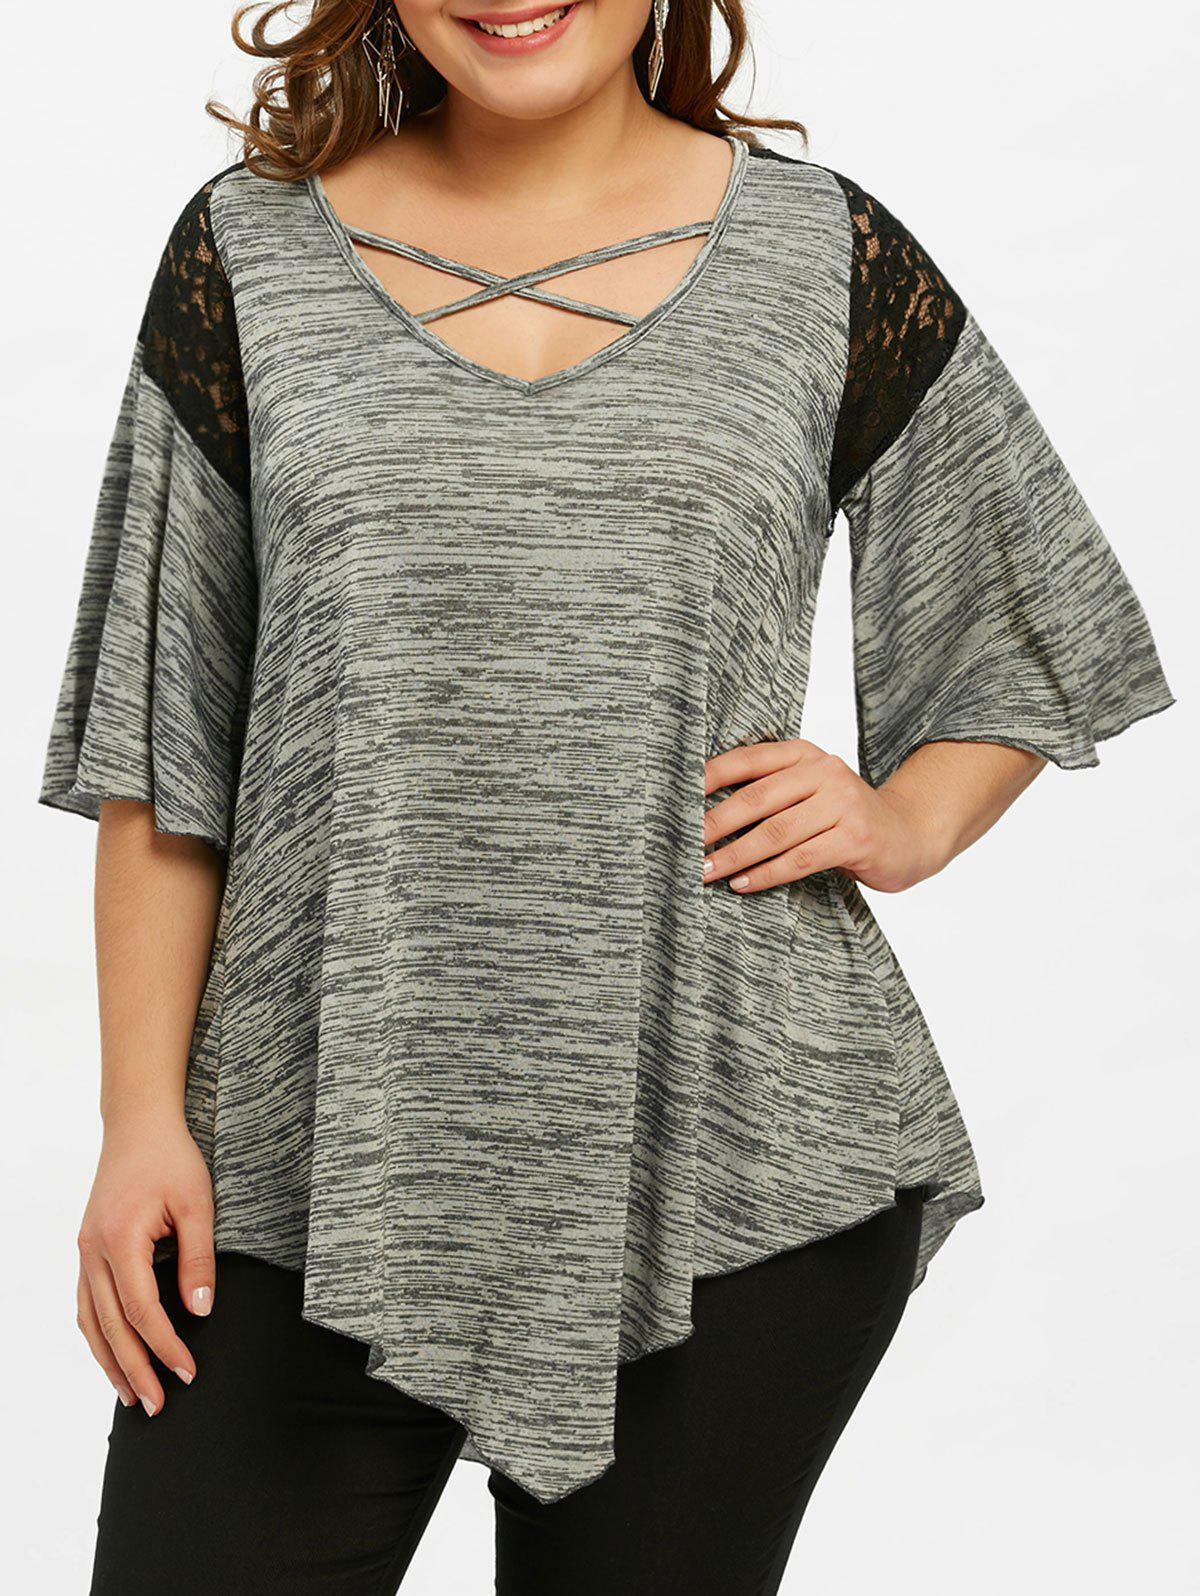 Flare Sleeve Plus Size Asymmetrical Tunic T-shirt asymmetrical plus size flare sleeve tunic t shirt